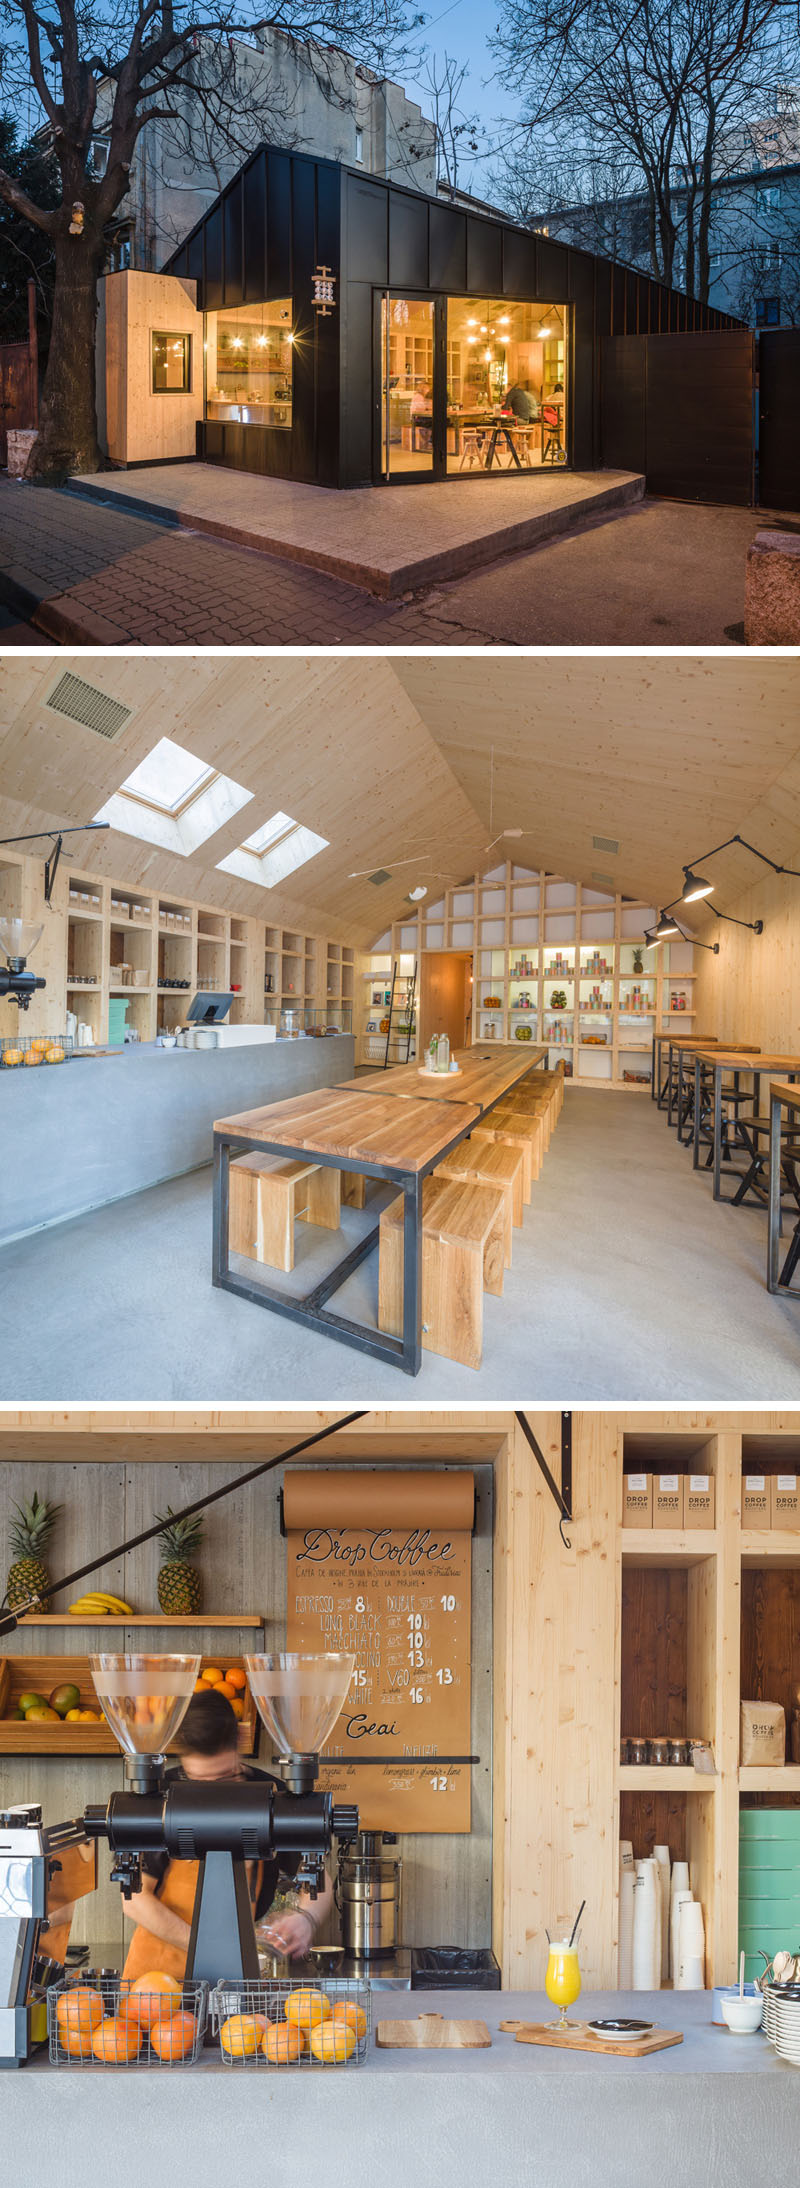 This modern cafe and juice bar features simple wood, steel, and concrete interiors that showcases their products and keeps the space bright and welcoming.